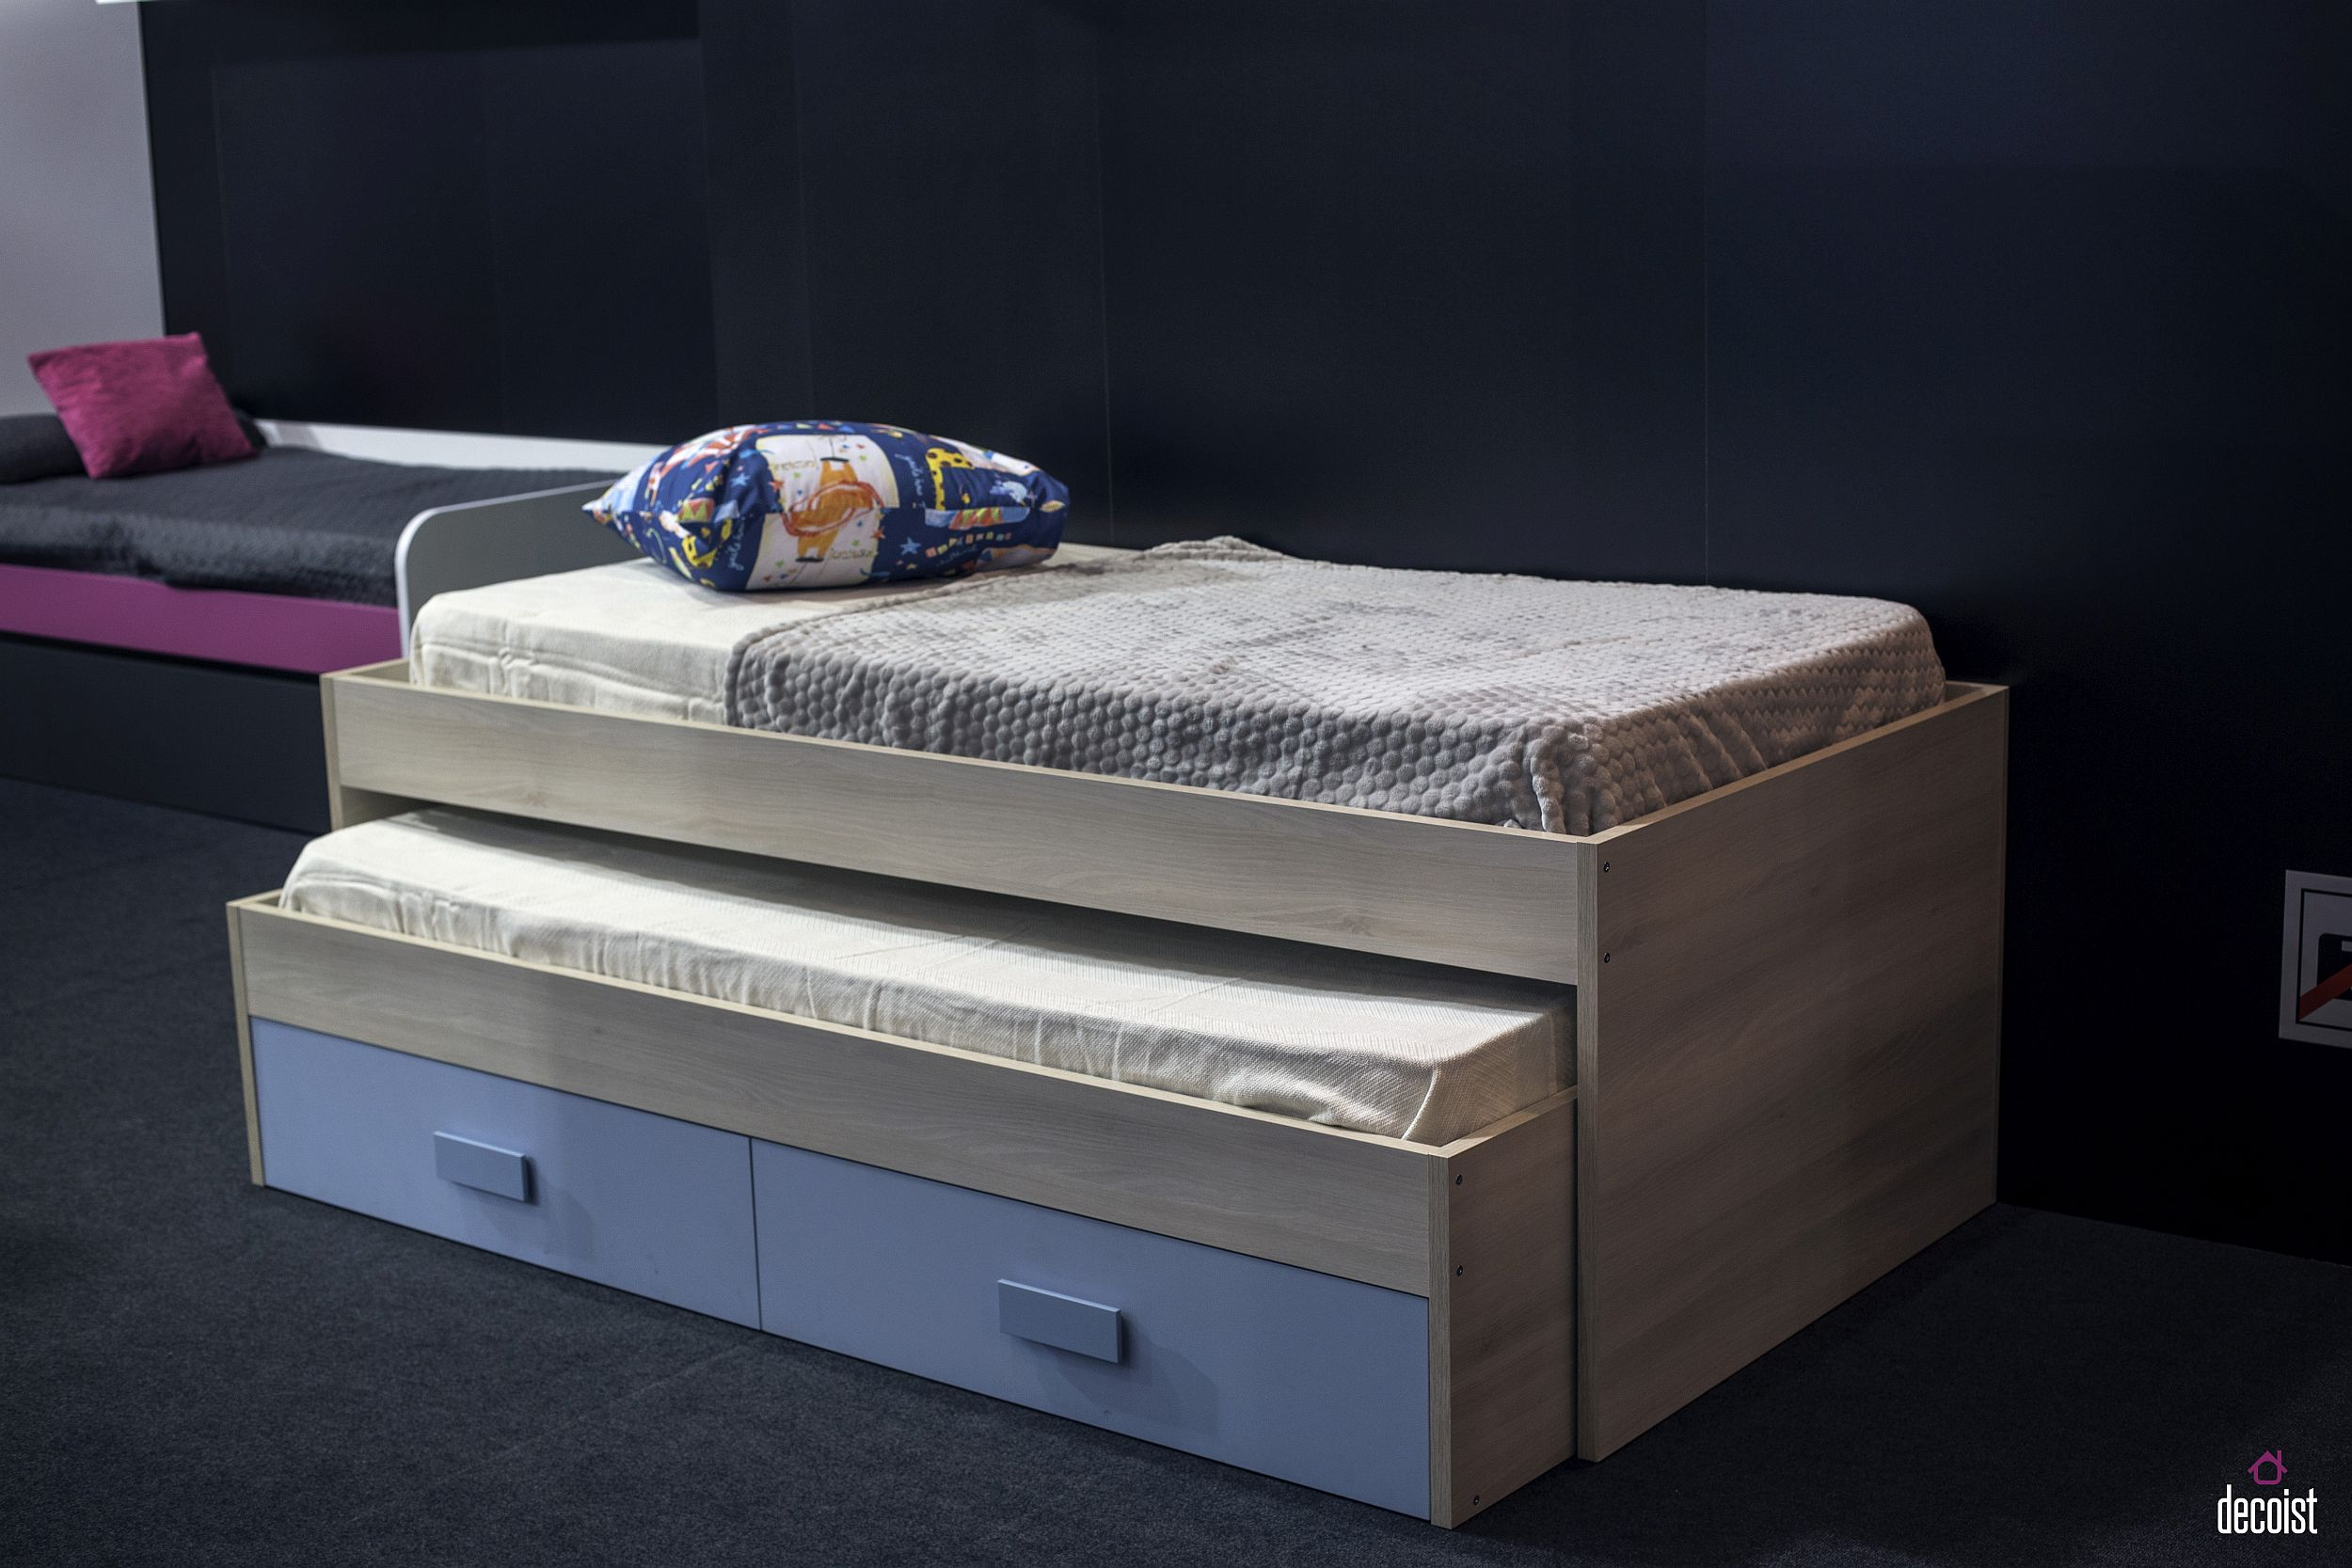 Kids' trundle bed with storage in elegant blue and wood